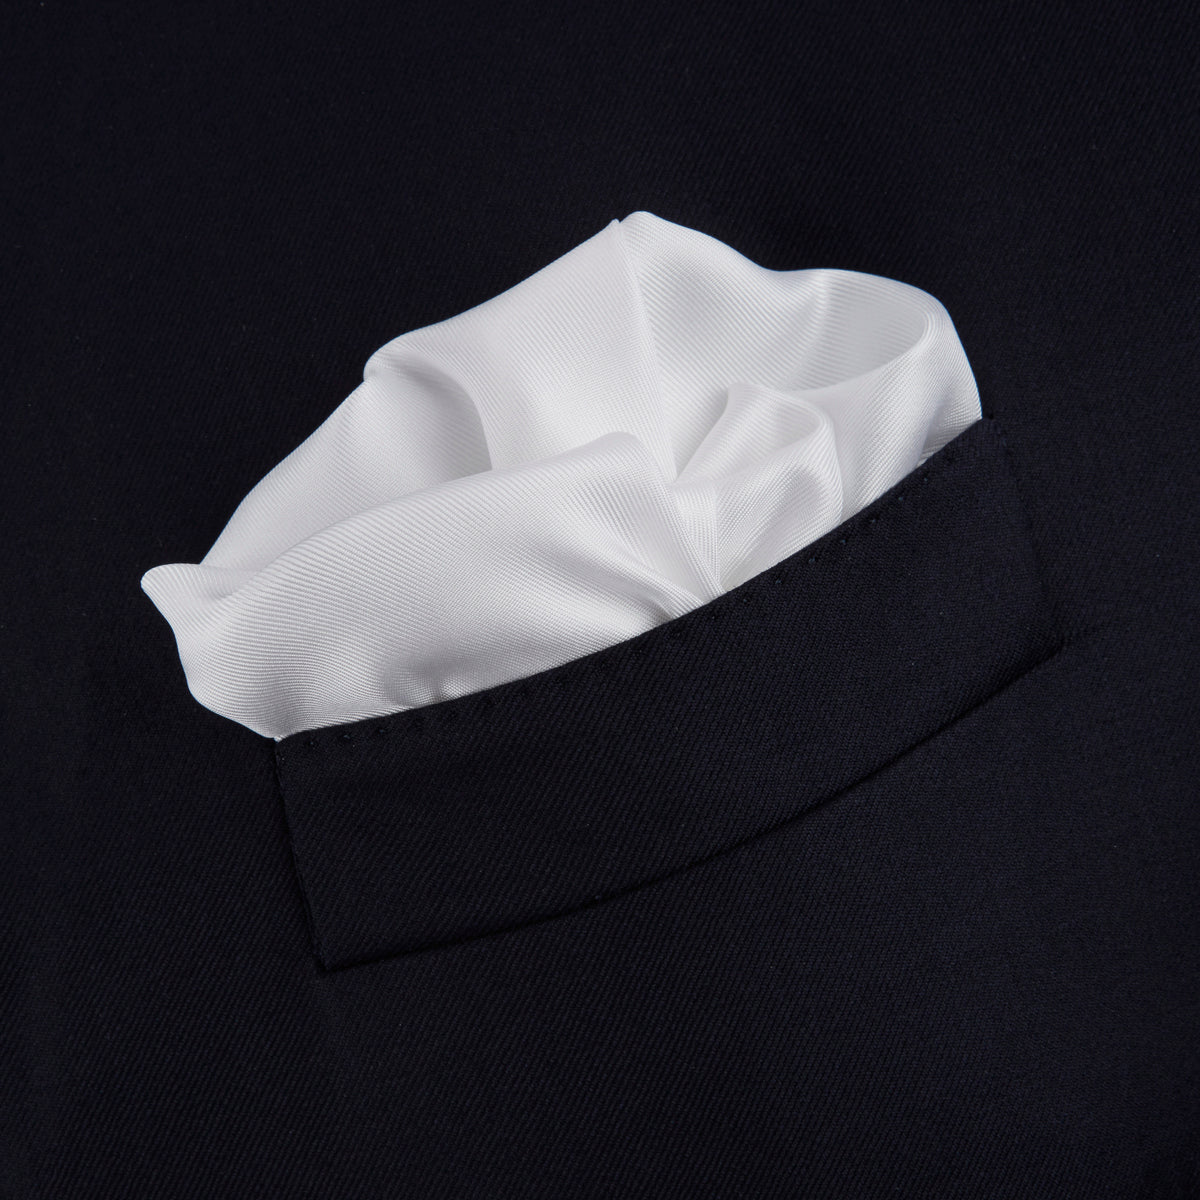 White and Black Piped Silk Pocket Square